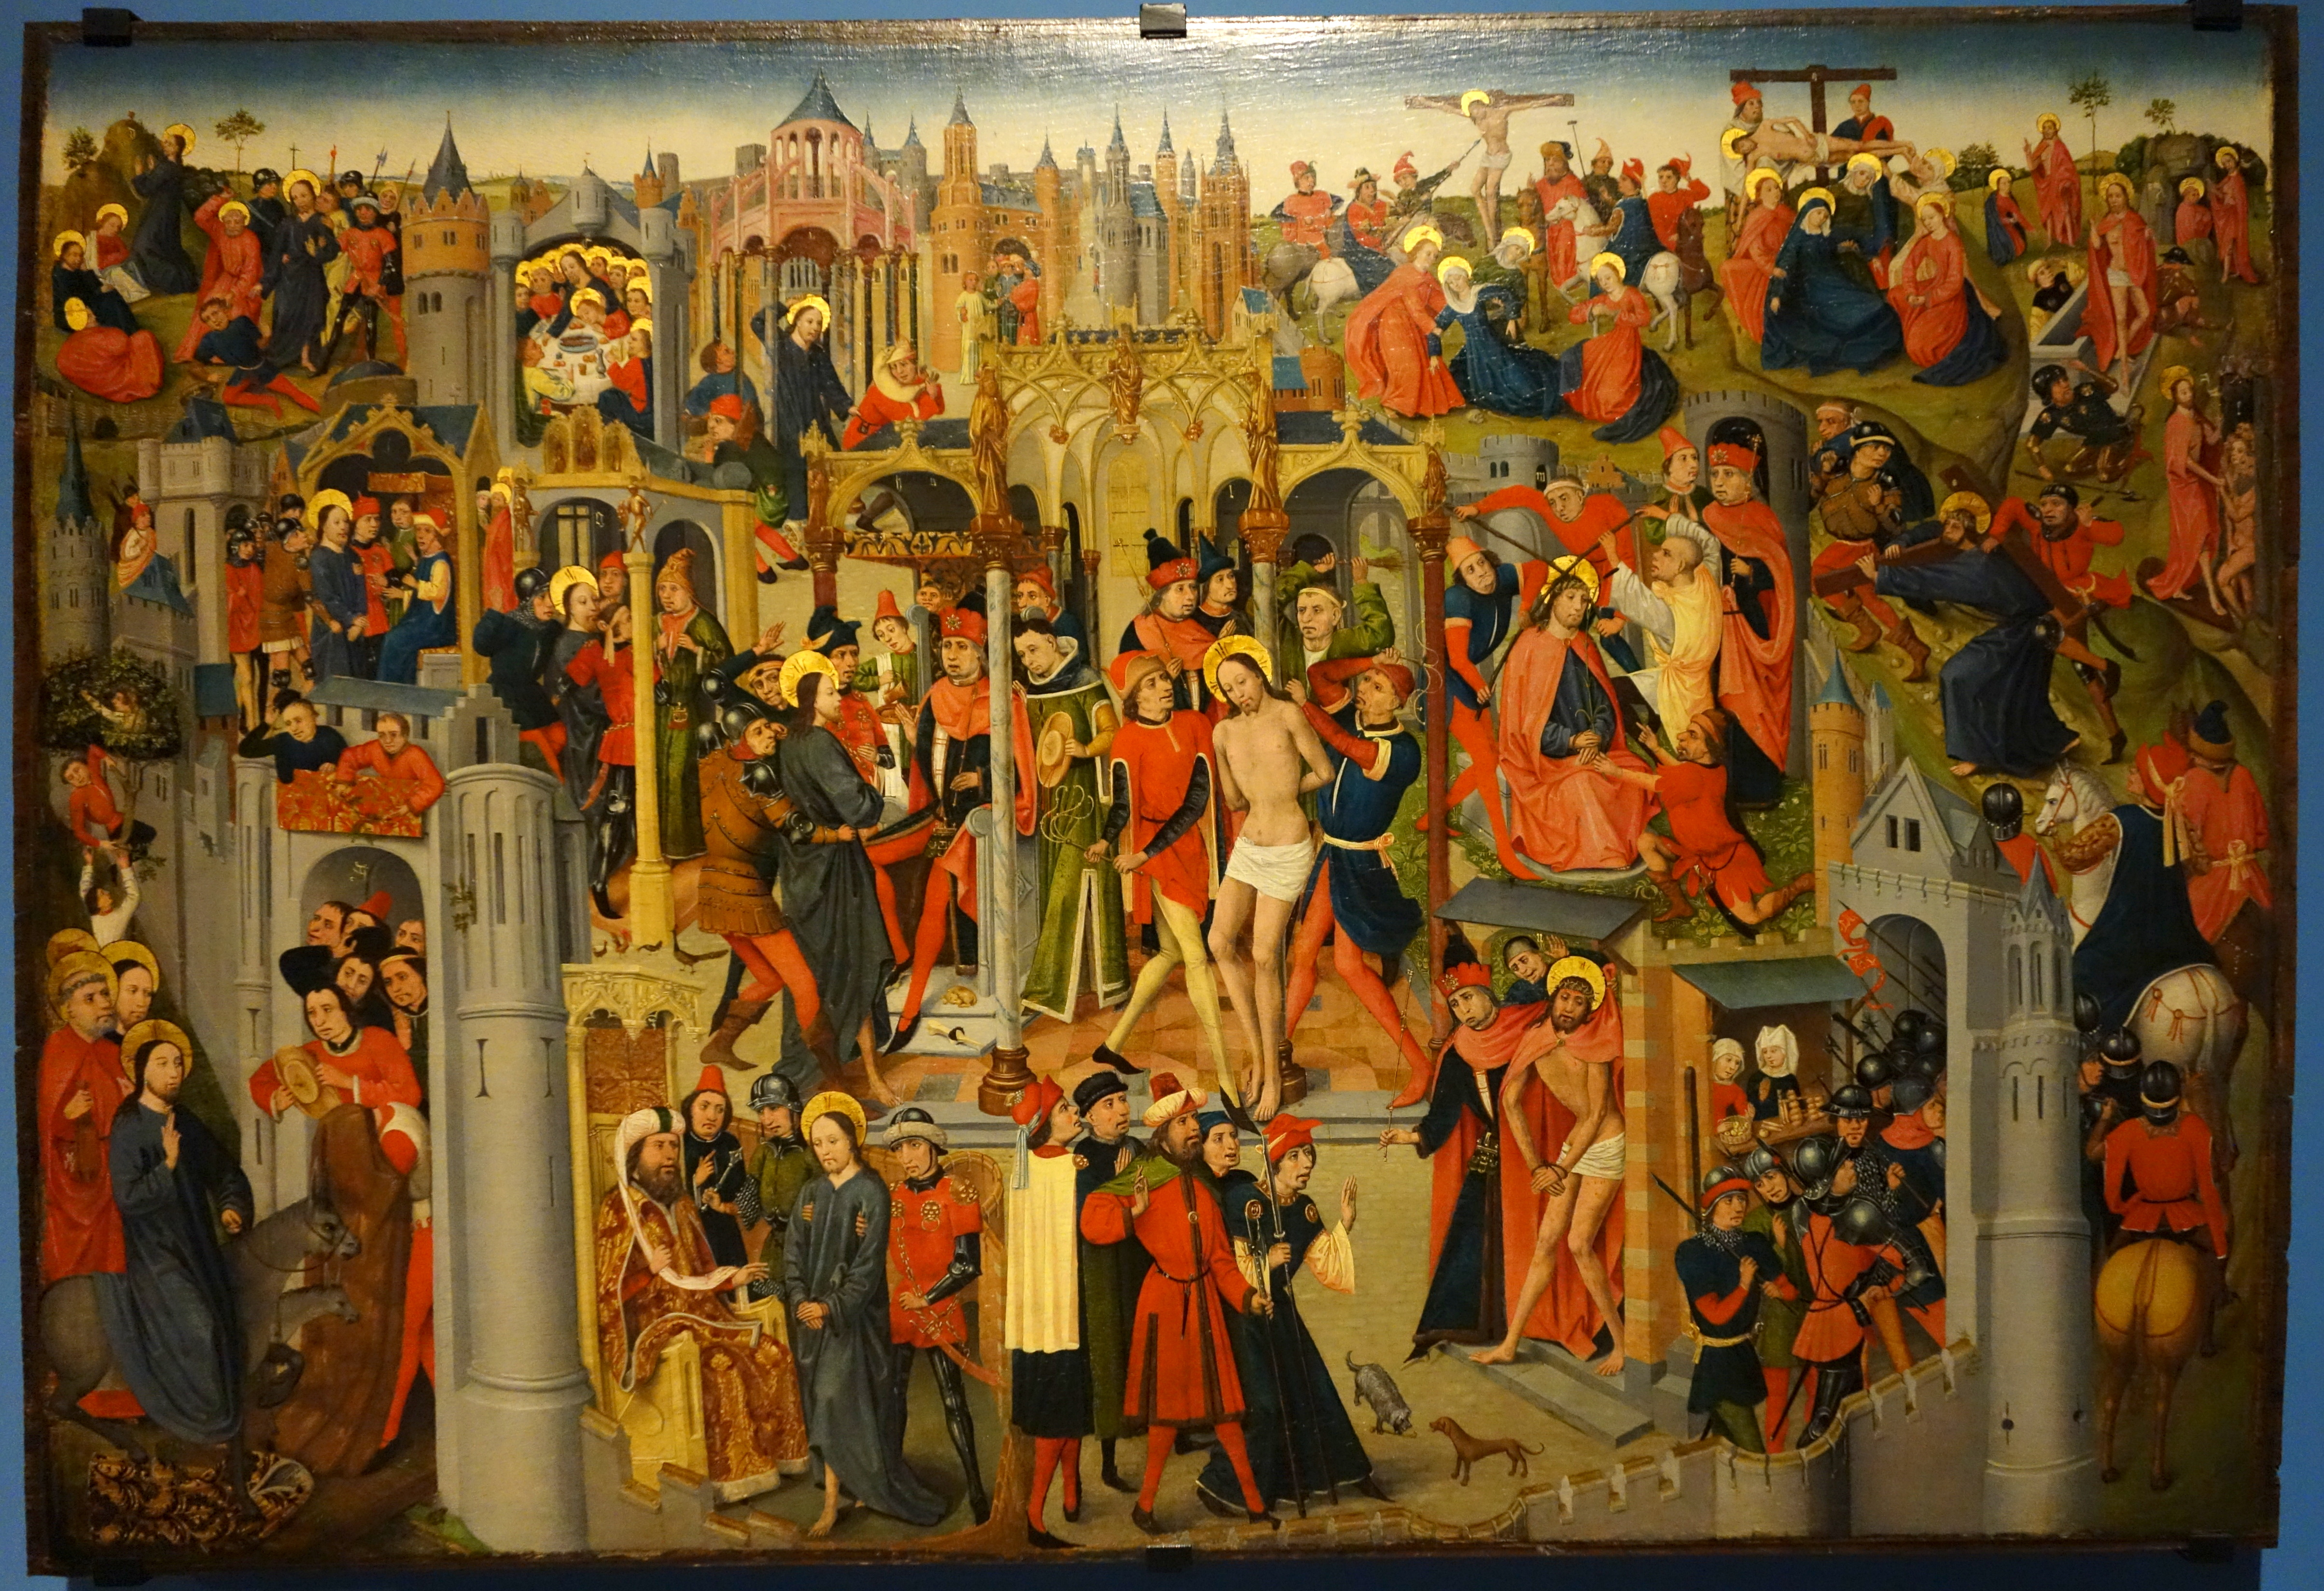 File:Scenes of the Passion of Christ, artist unknown, Brabant, c.